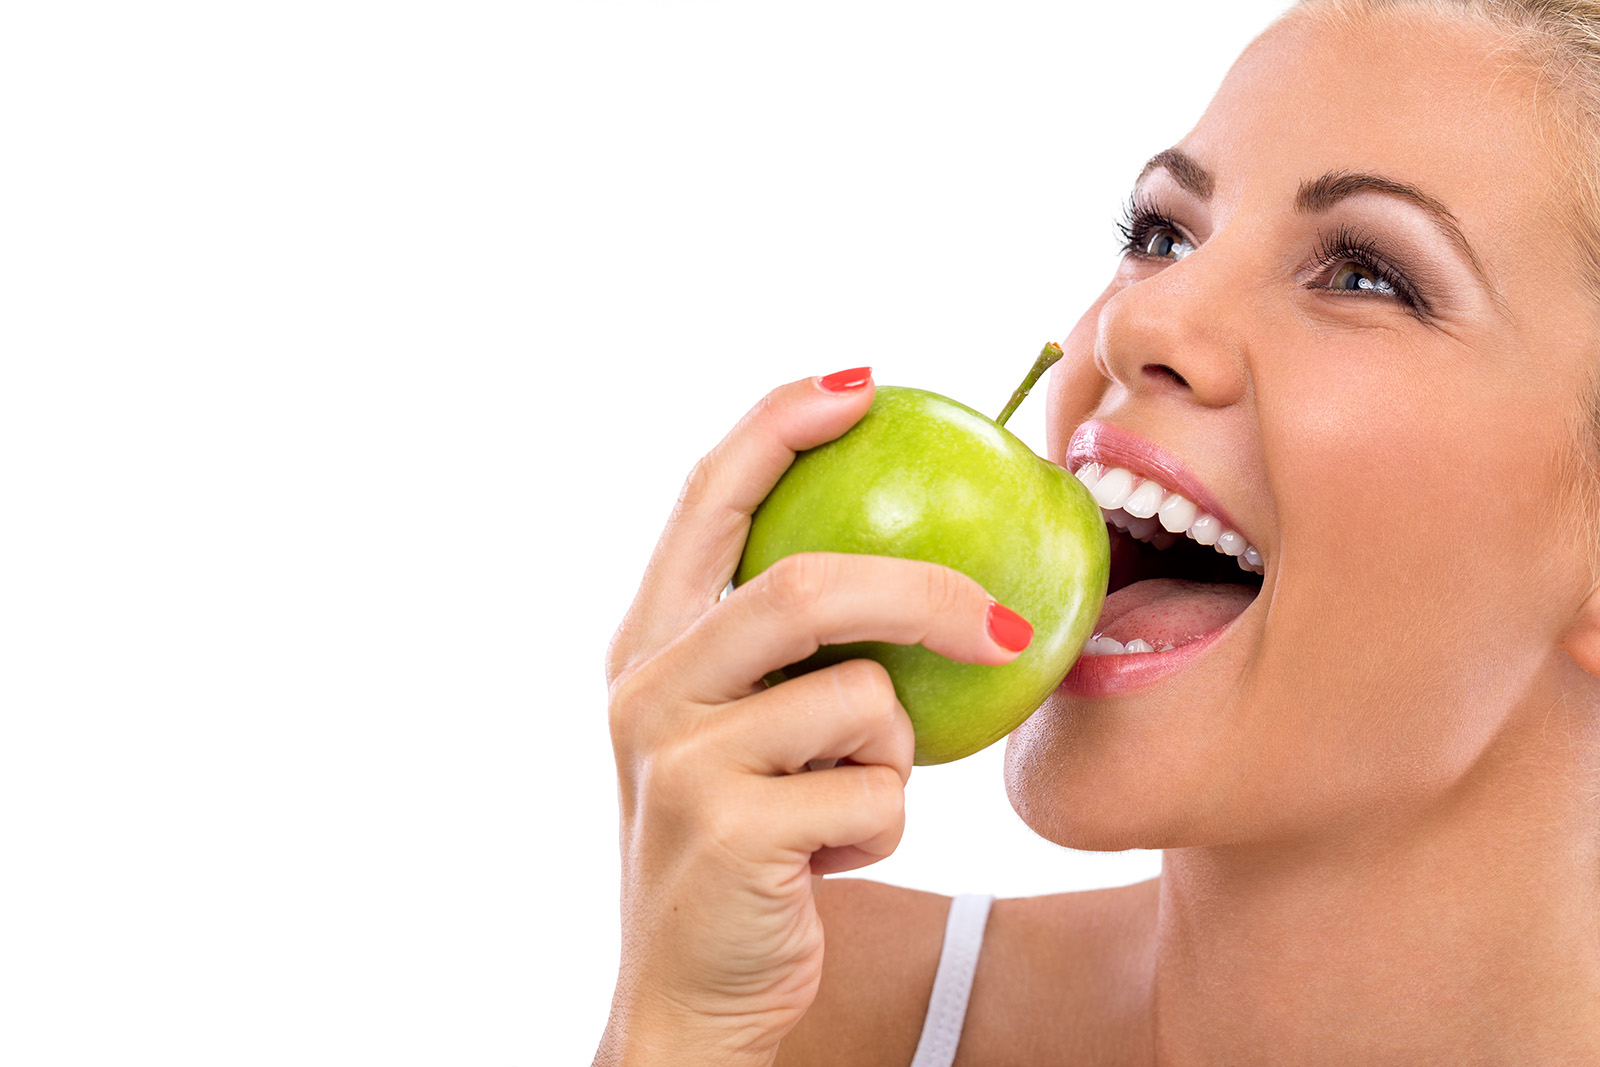 Eating apples beauty close-up 51506